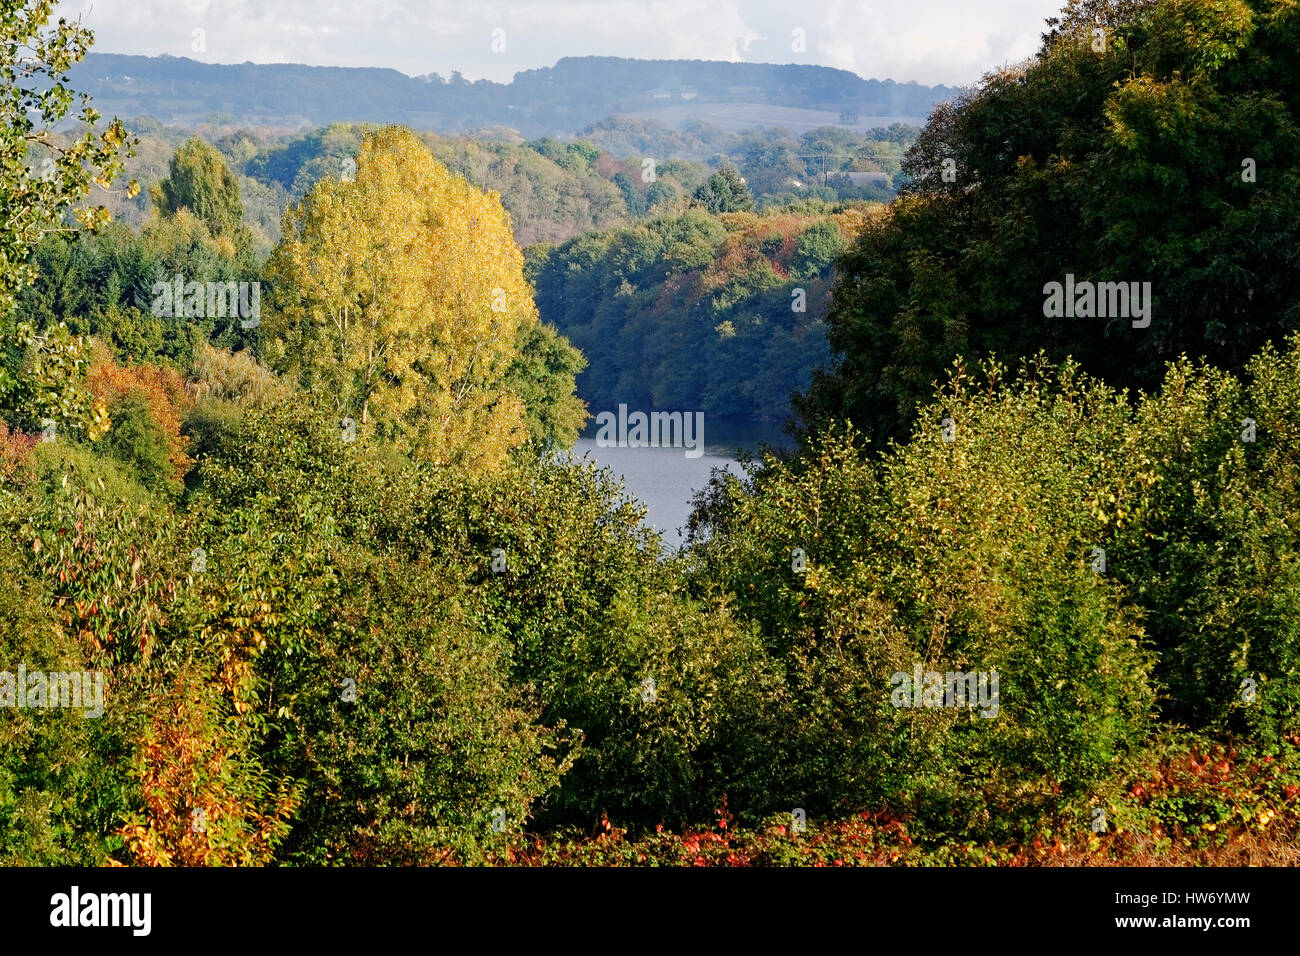 Valley of the river Mayenne in the fall, shores lined with trees (Oaks, conifers, poplars). Stock Photo